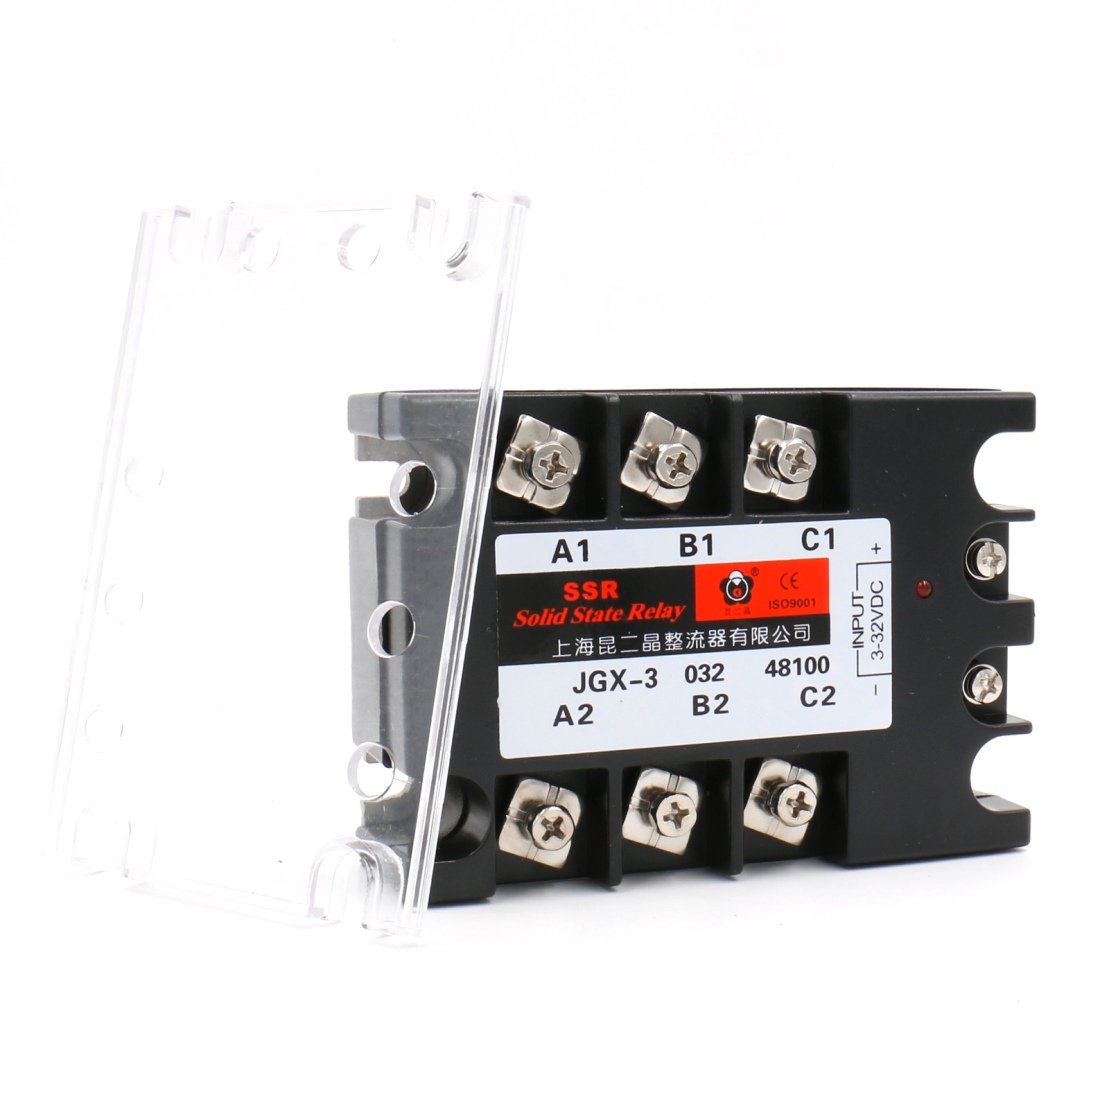 Baomain 3 Phase Solid State Relay JGX-48100A 3-32 VDC Input 480VAC 100 Amp Output DC/AC by Baomain